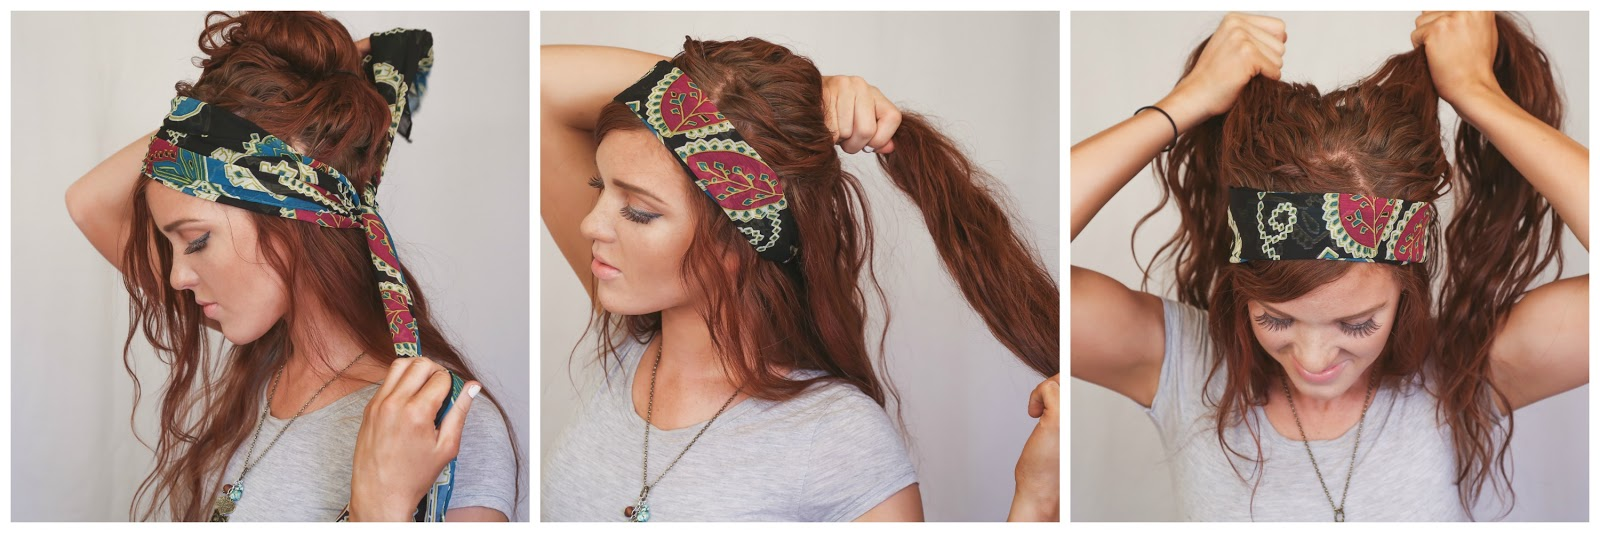 The Freckled Fox Festival Hair Week Bohemian Gypsy Style